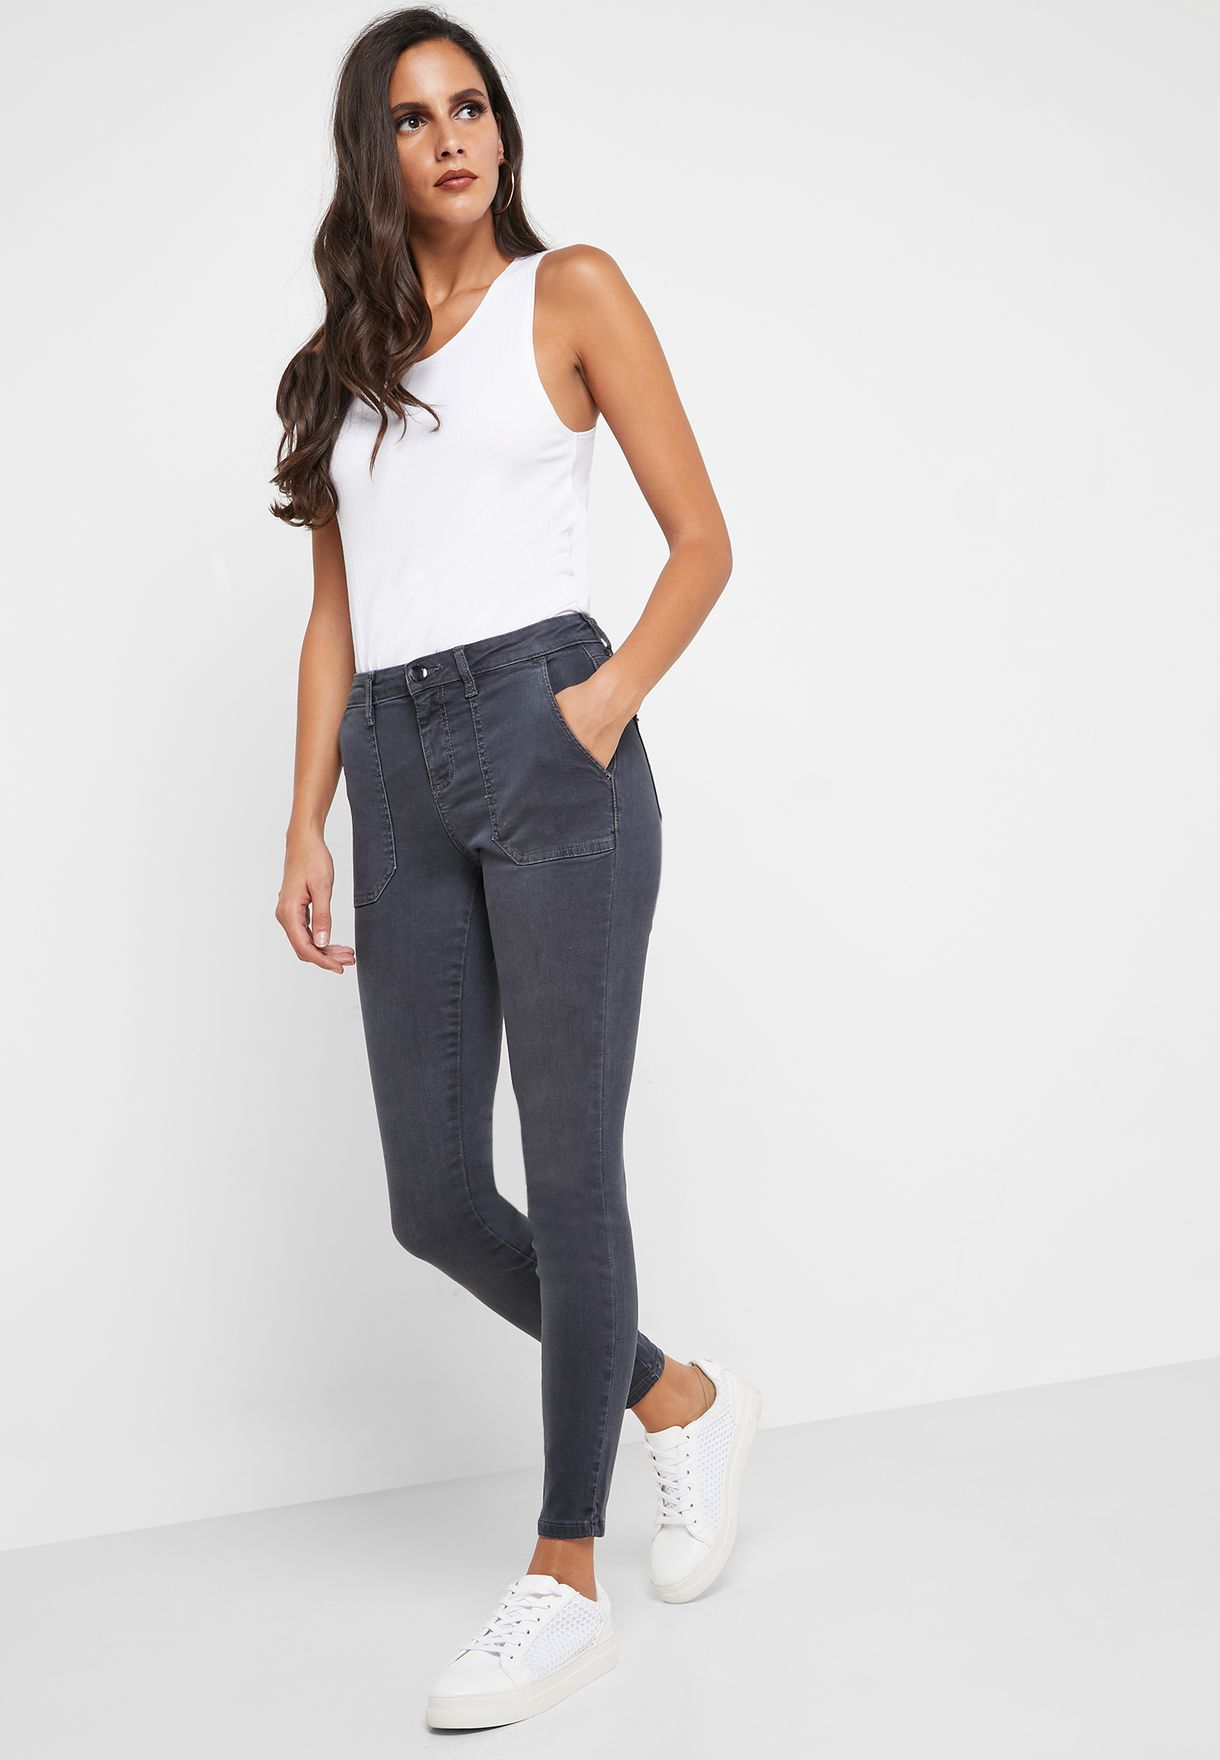 Ultility Darcy Pants